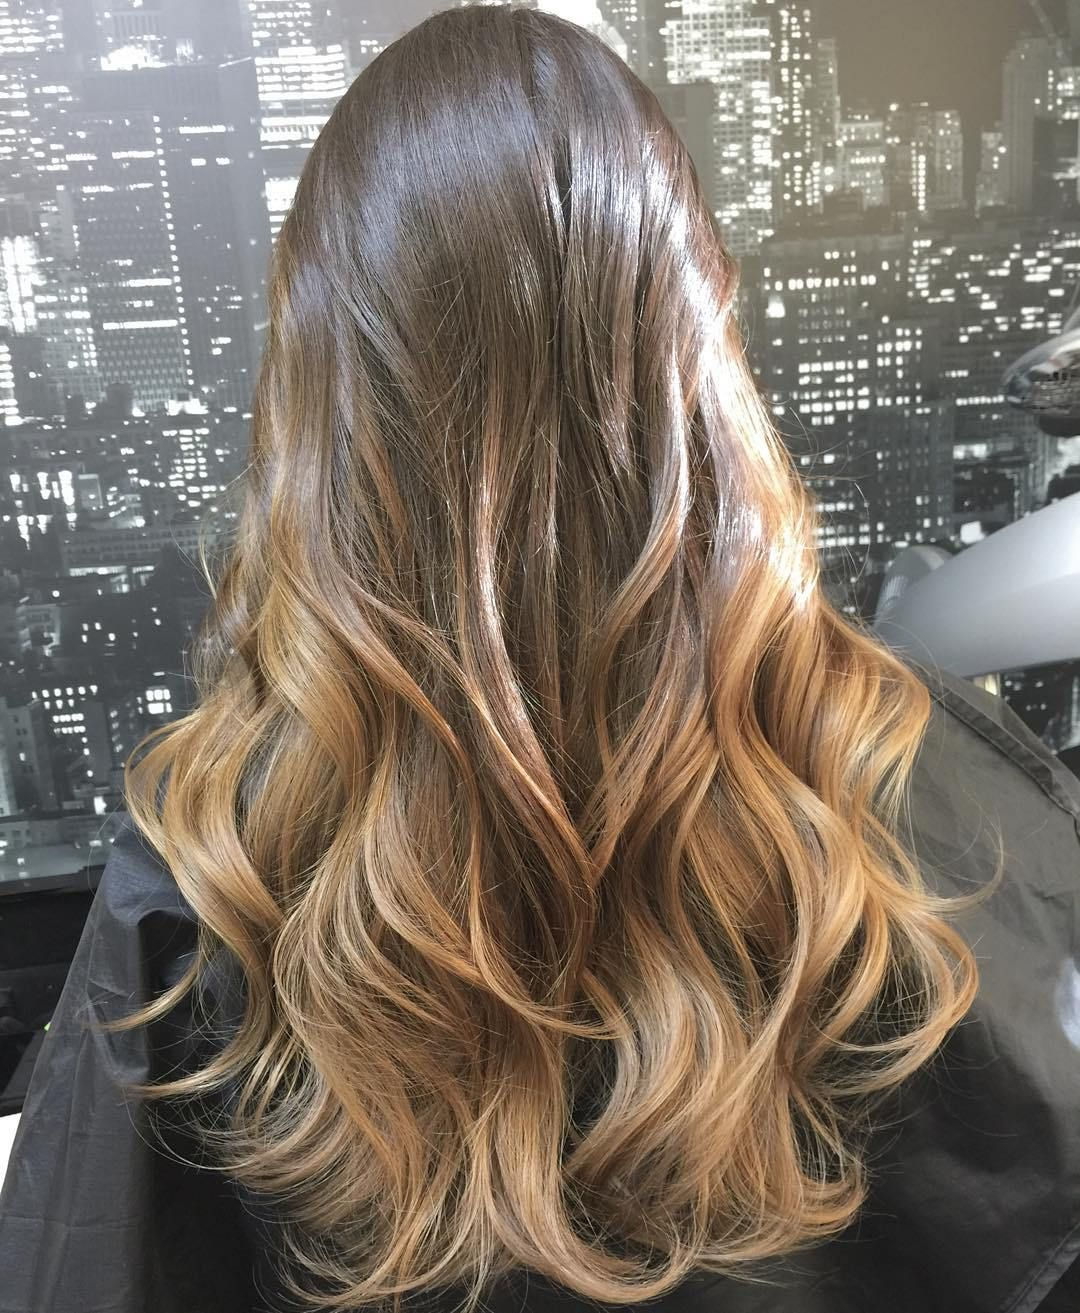 60 best ombre hair color ideas for blond brown red and black 60 best ombre hair color ideas for blond brown red and black hair urmus Choice Image